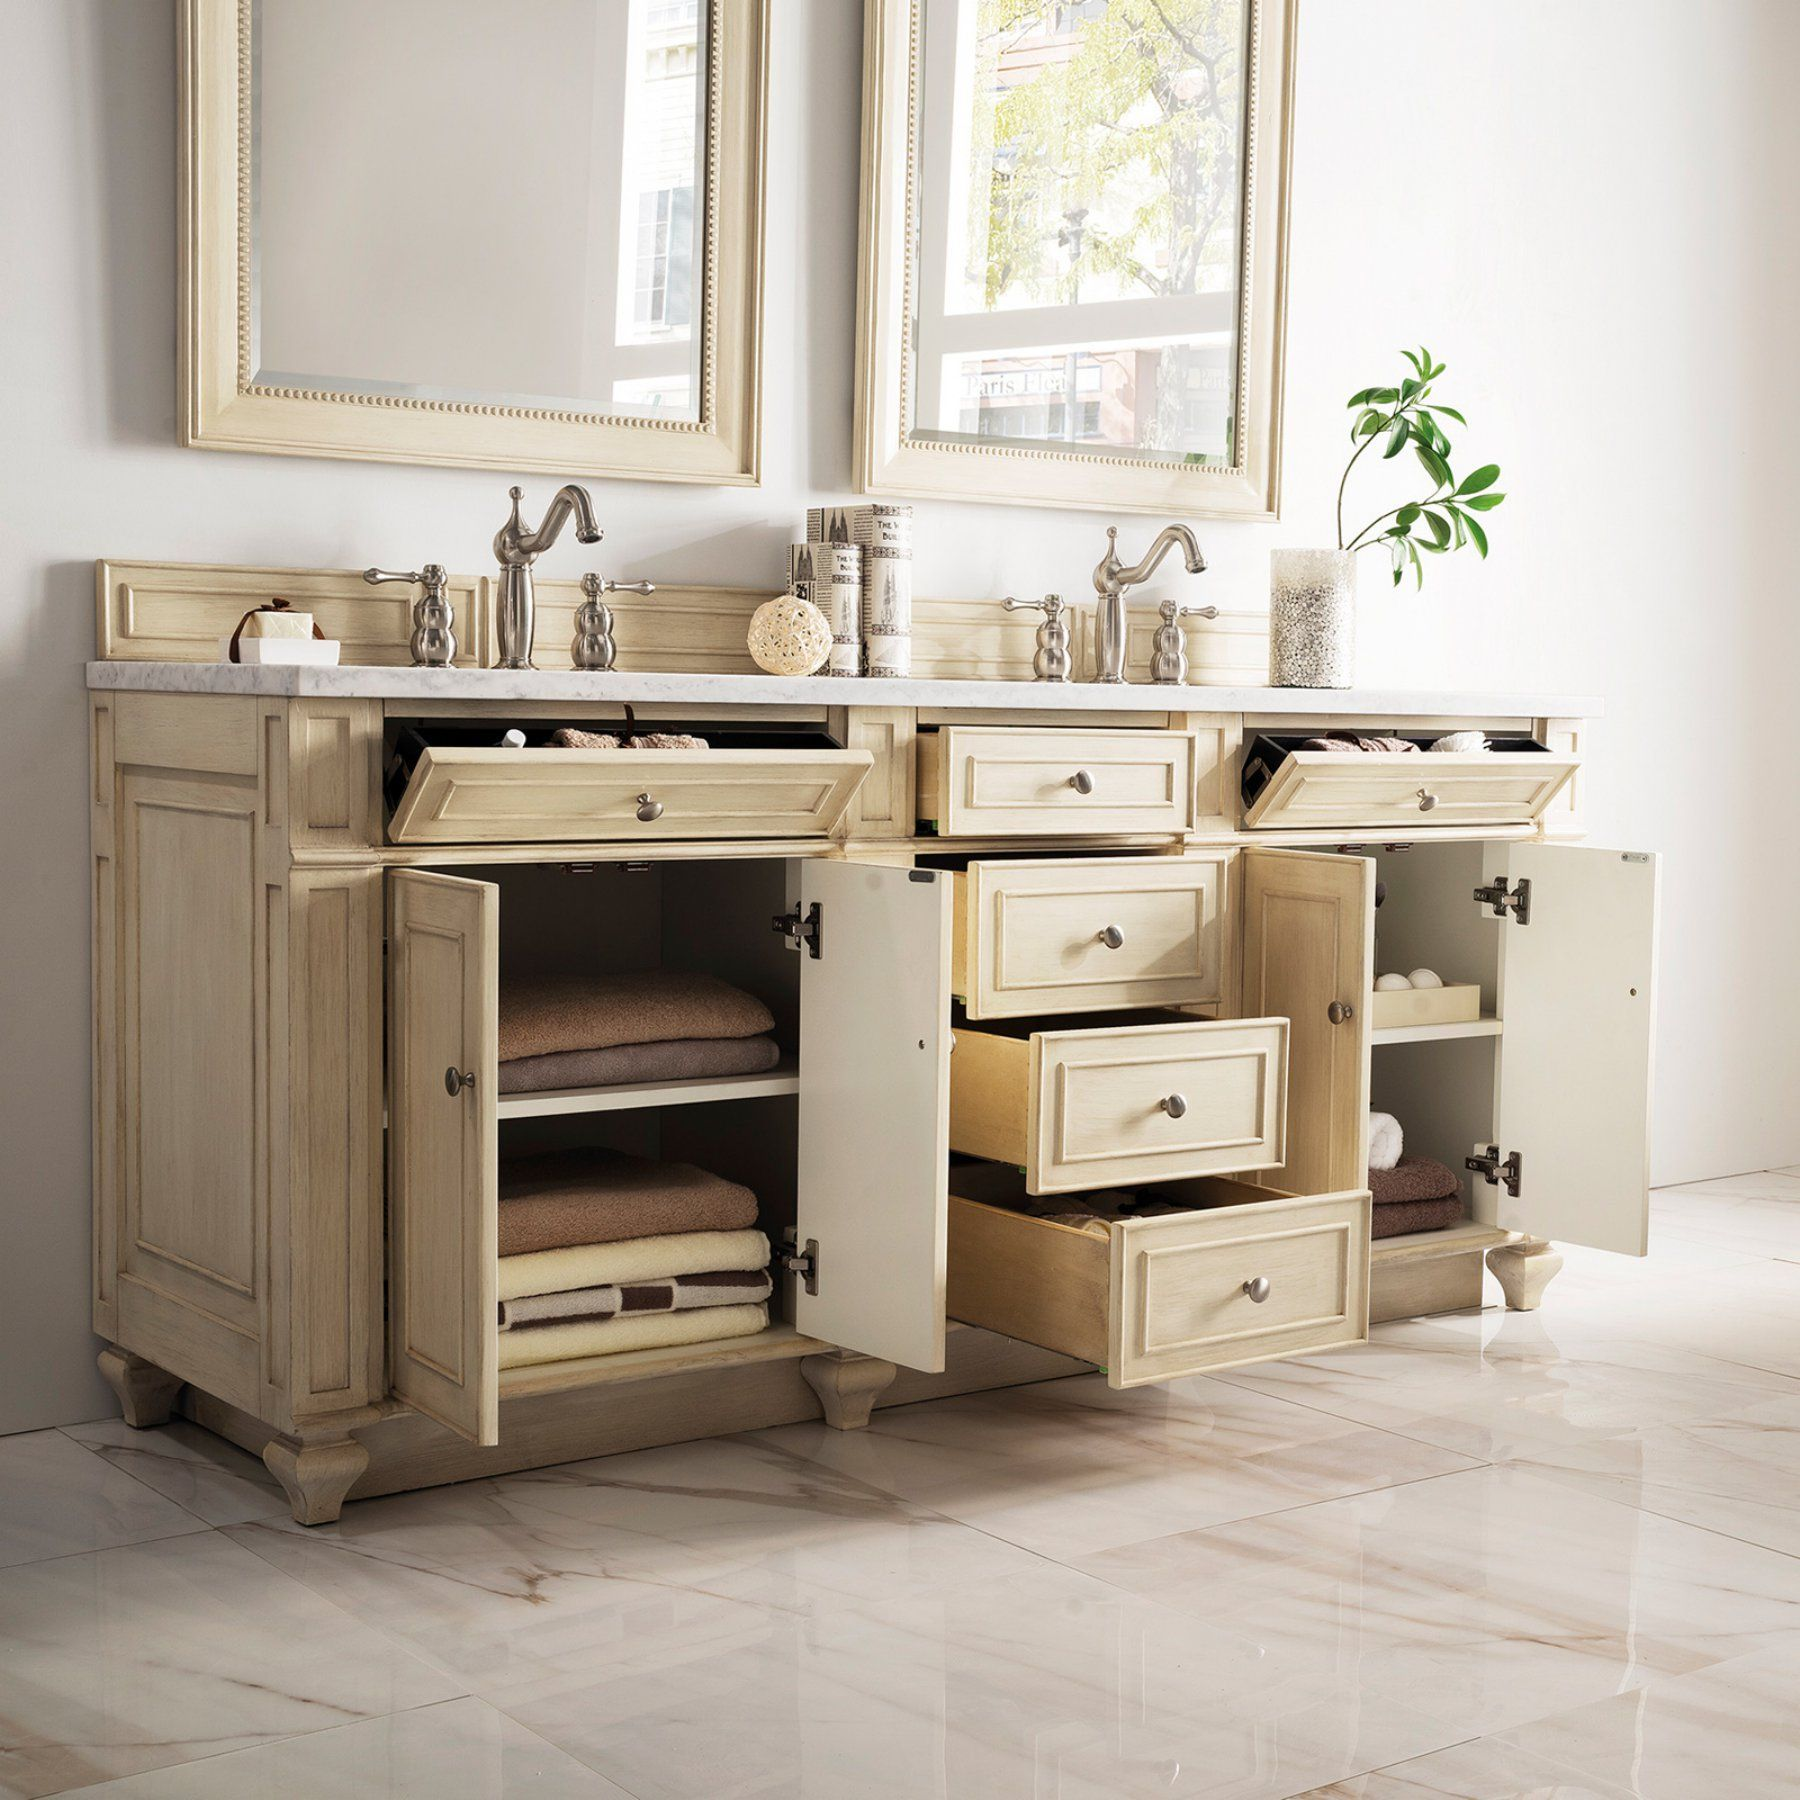 James Martin Furniture Bristol 72 in. Double Vanity - 157 ...